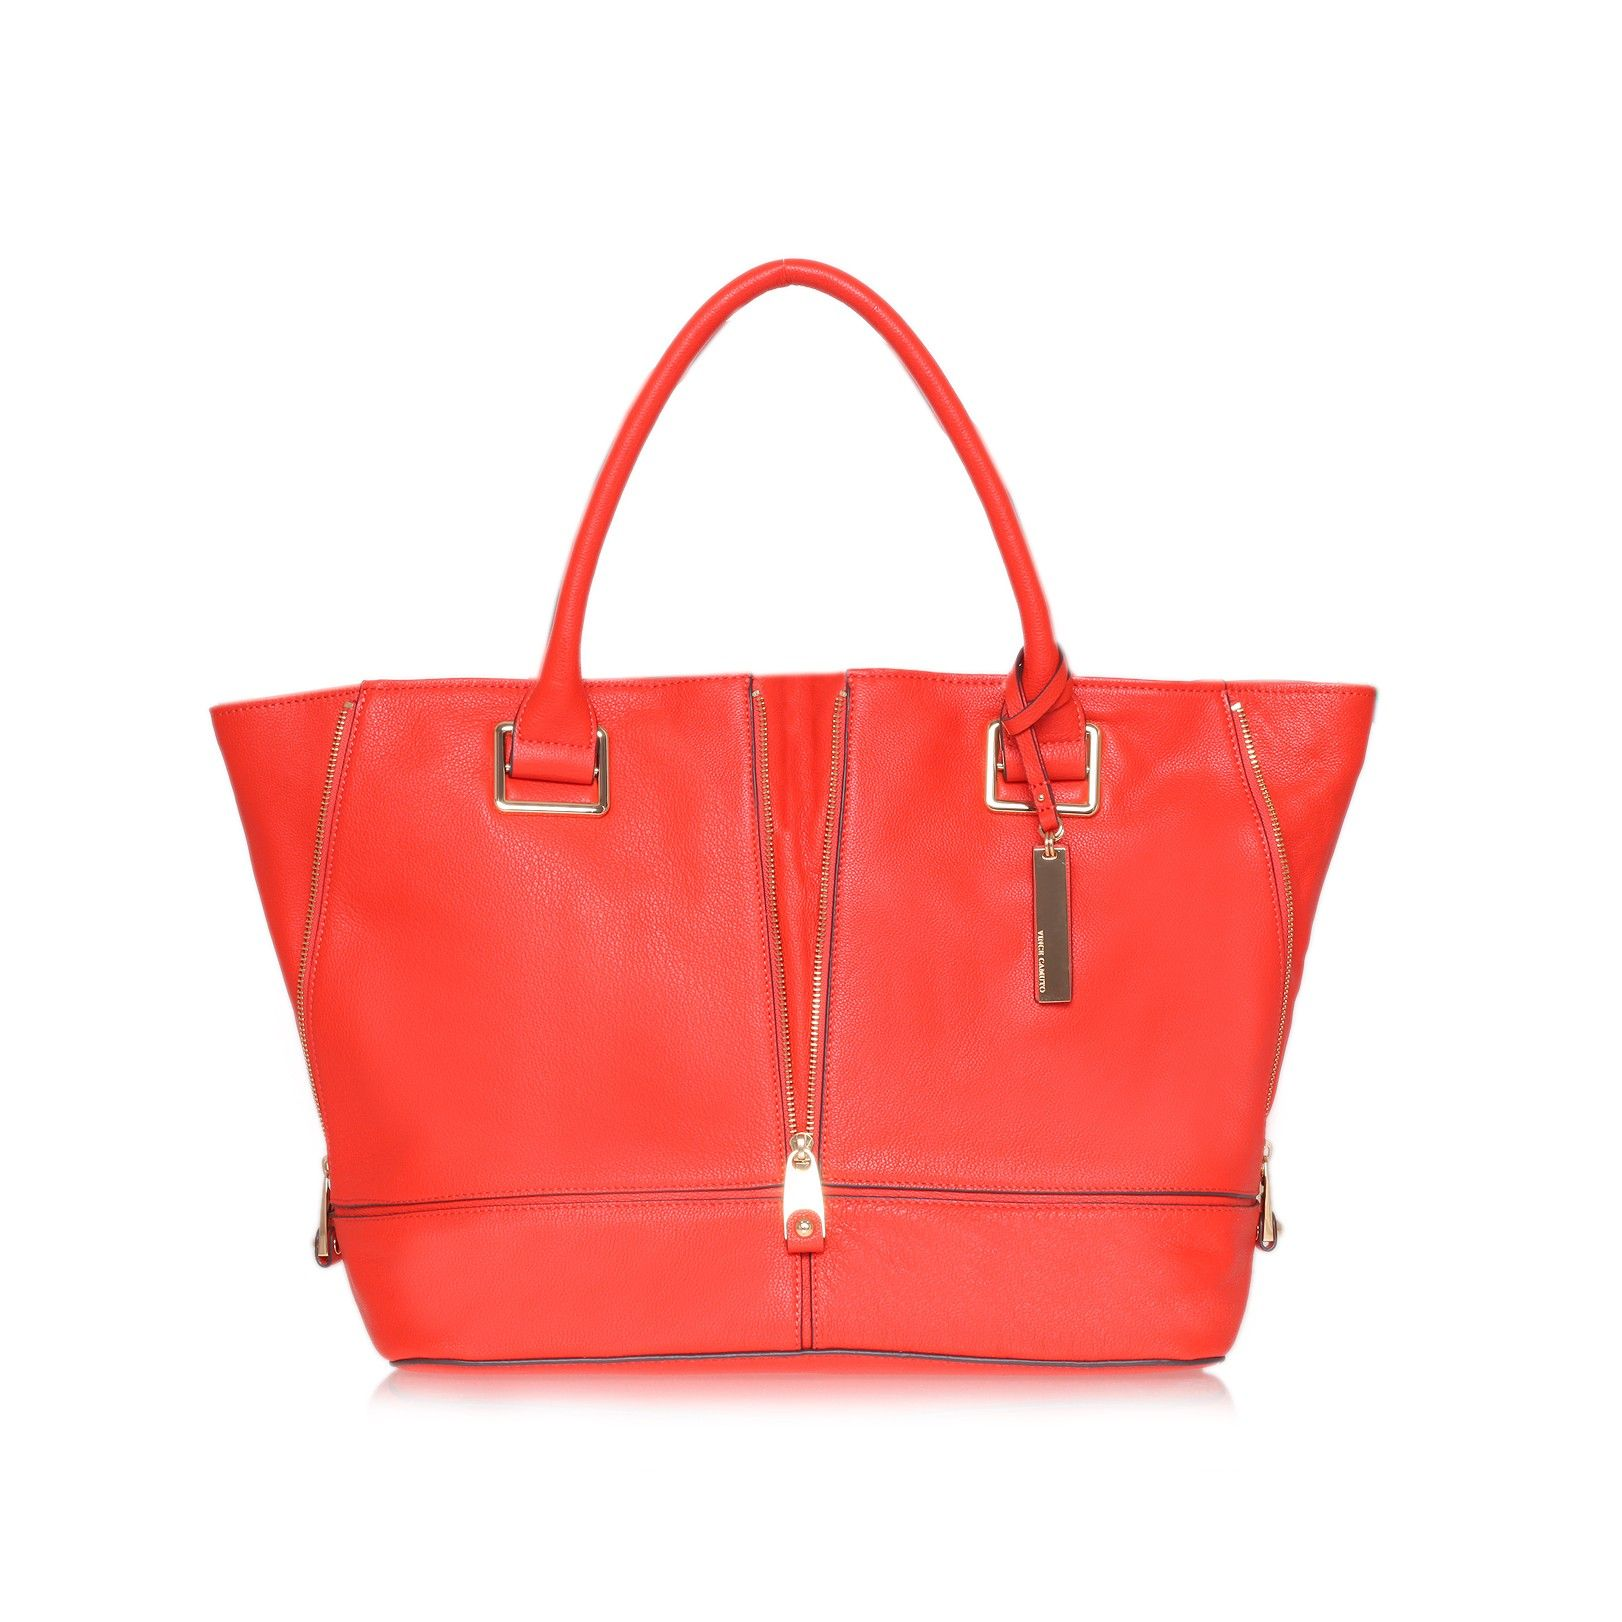 Iris Tote Orange Bag By Vince Camuto Bags Zingy Cheerful